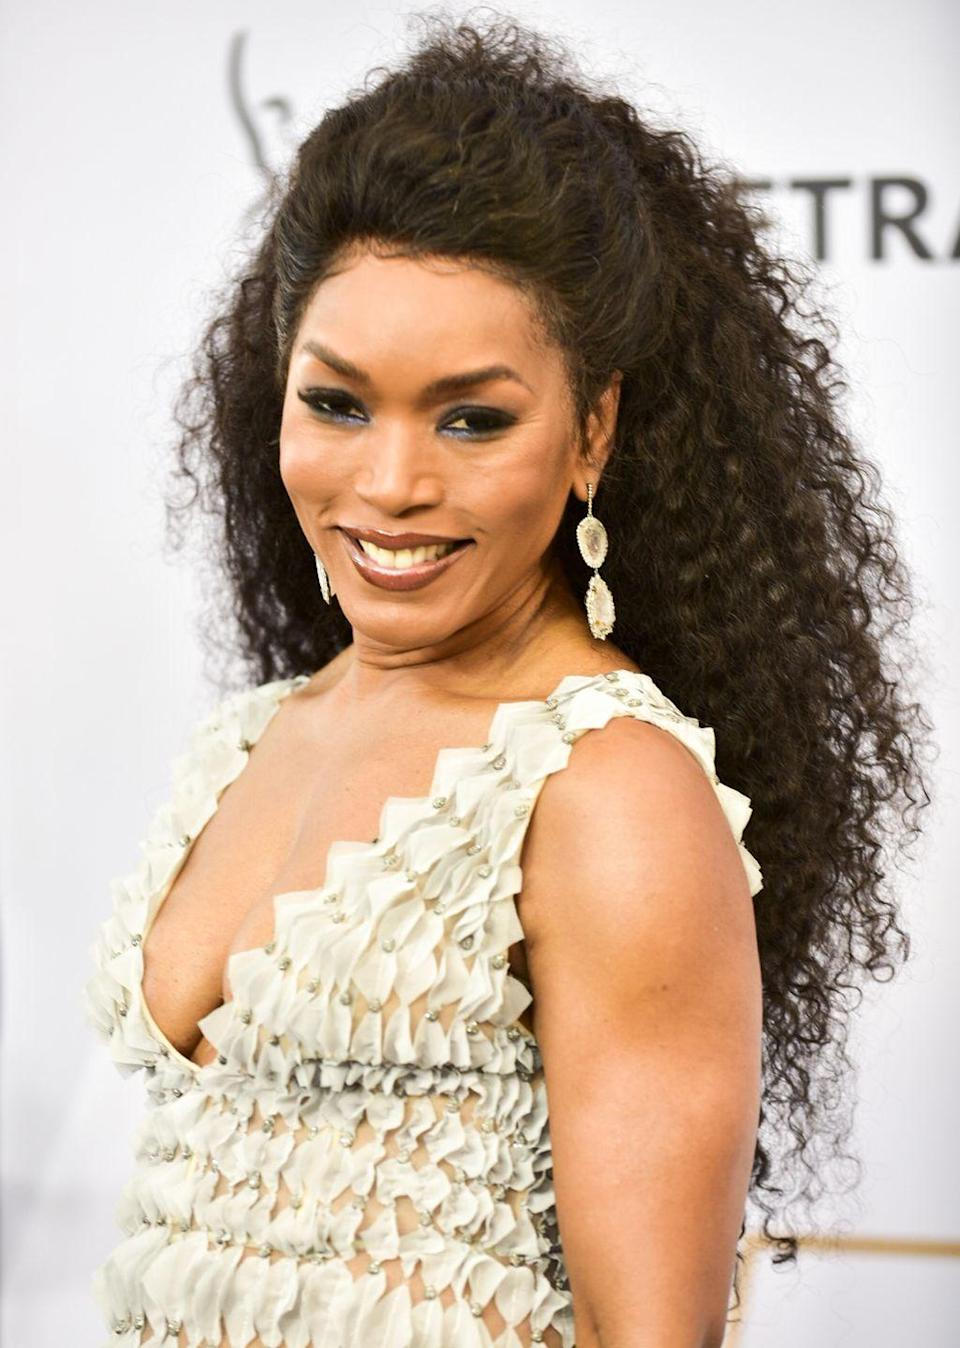 """<p>Angela Bassett signed on to play Brad Pitt's boss in the spy thriller, <em>Mr. & Mrs. Smith</em>. While she filmed her scenes, Bassett's part was cut and <a href=""""https://www.imdb.com/title/tt0356910/trivia"""" rel=""""nofollow noopener"""" target=""""_blank"""" data-ylk=""""slk:she never made it into the final film"""" class=""""link rapid-noclick-resp"""">she never made it into the final film</a>. However, her voice is still heard in the movie.</p>"""